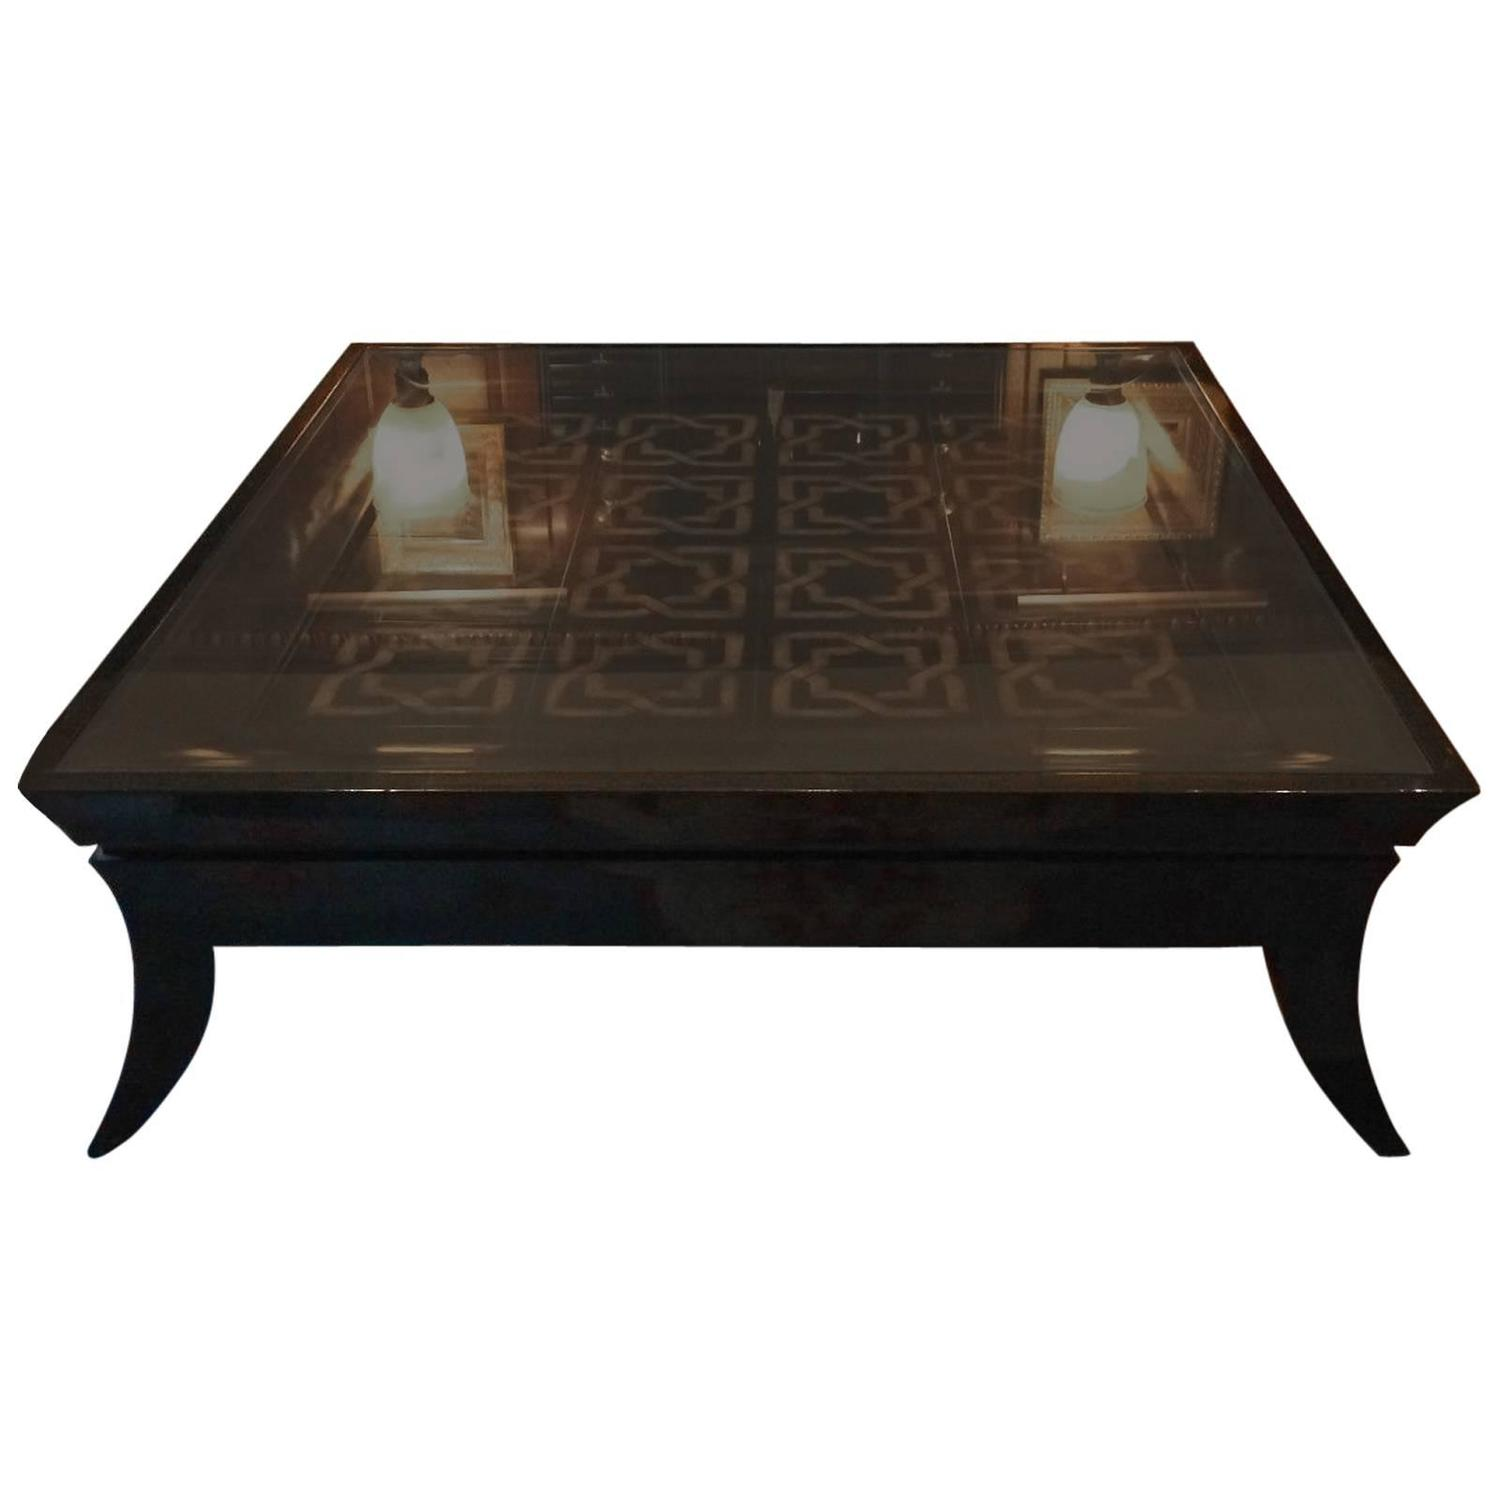 Large coffee table glass topped tiled modern at 1stdibs Large glass coffee table